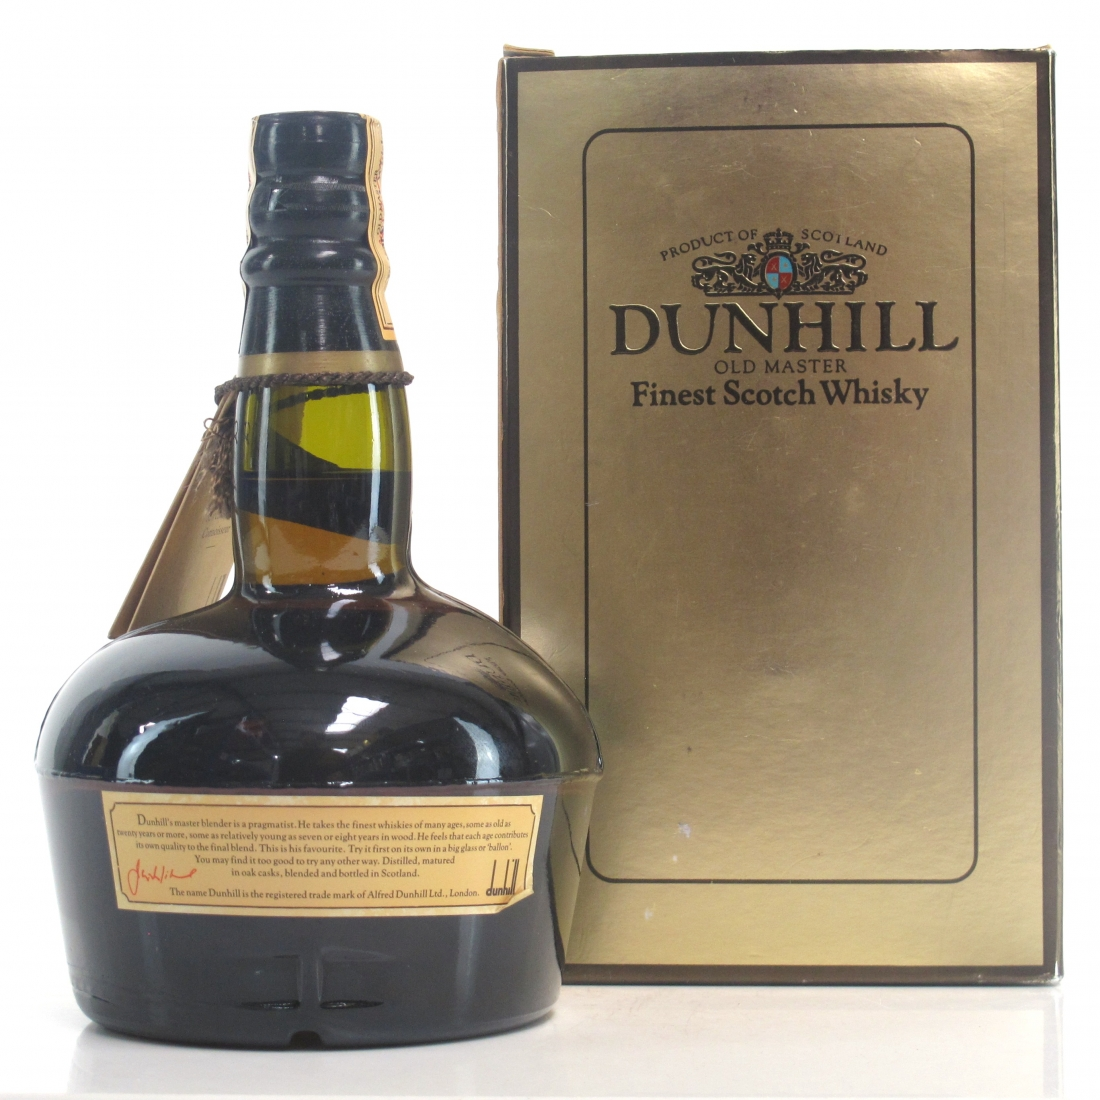 Dunhill Old Master 1980s